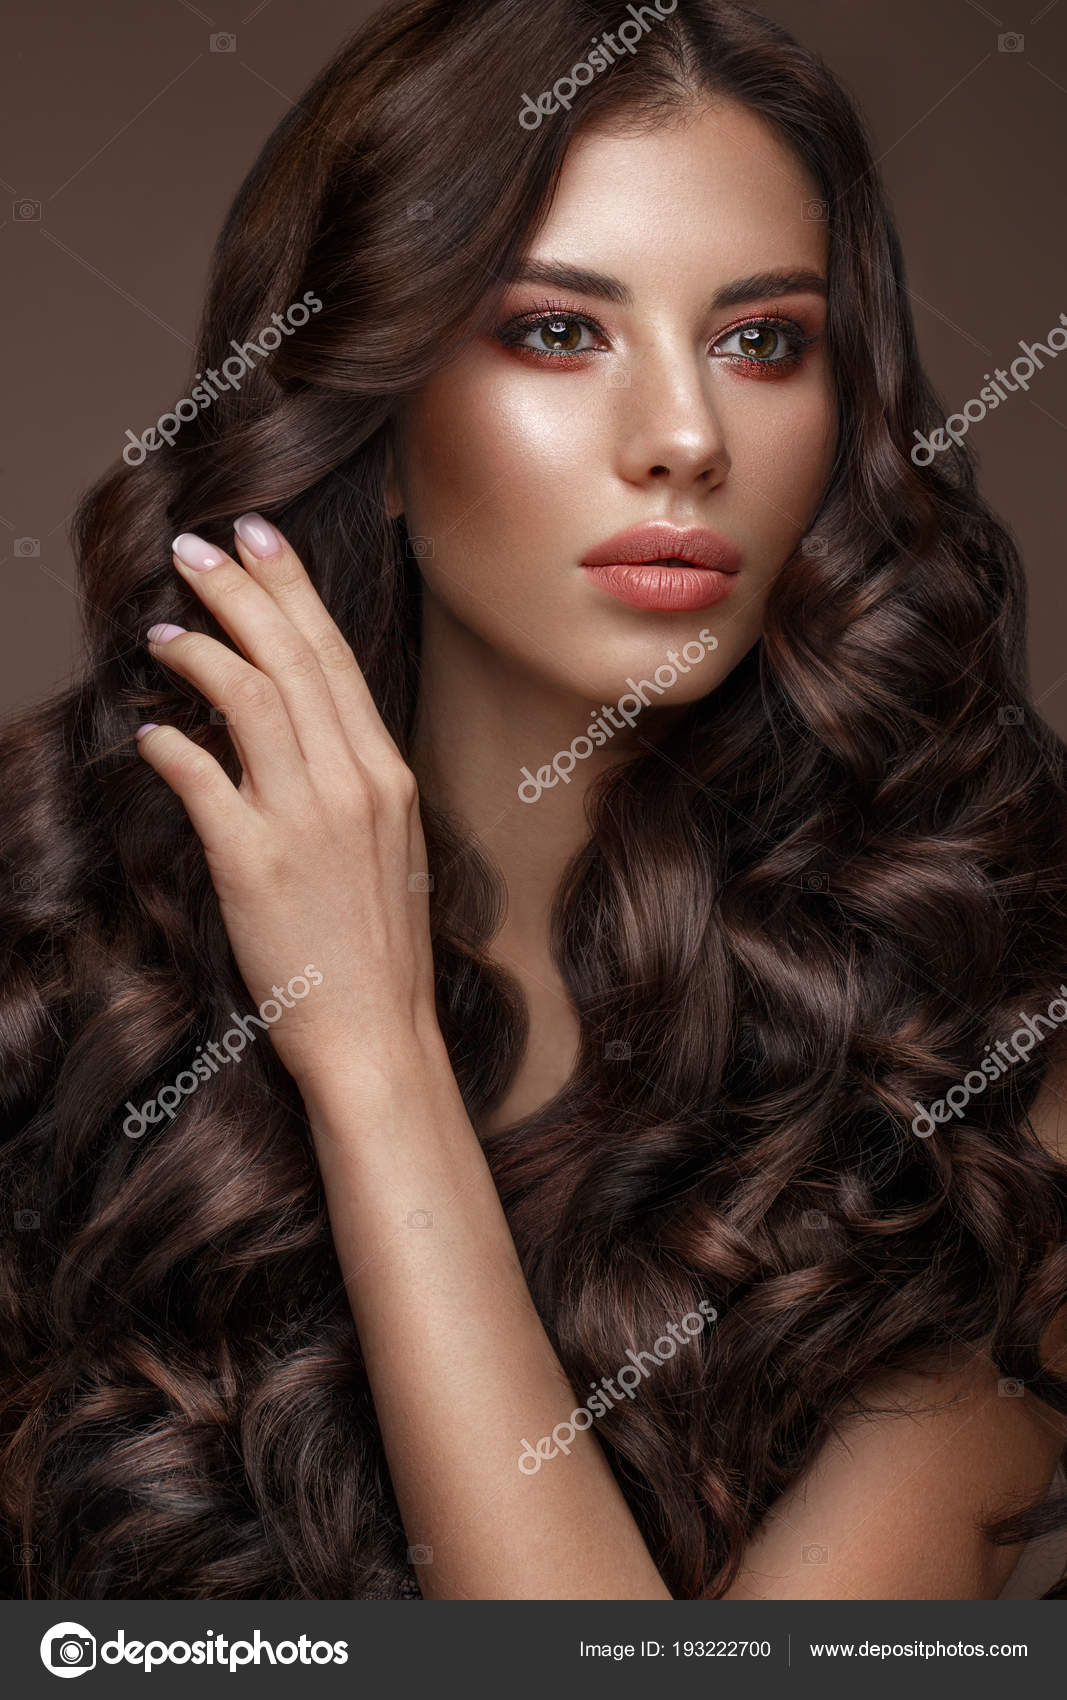 Beautiful Brunette Model Curls Classic Makeup And Full Lips The